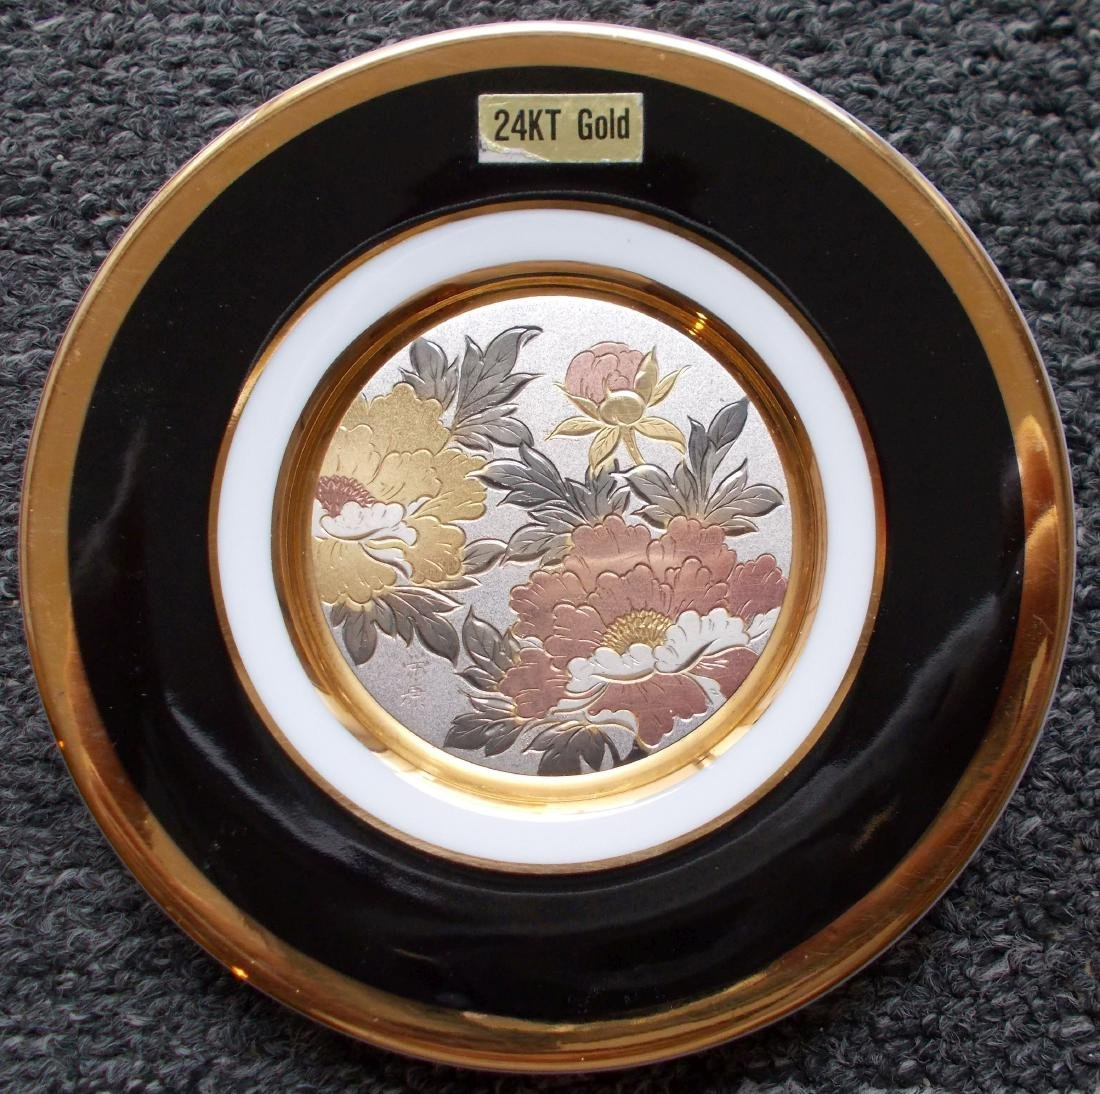 24kt Gold Plated Plate – Japan